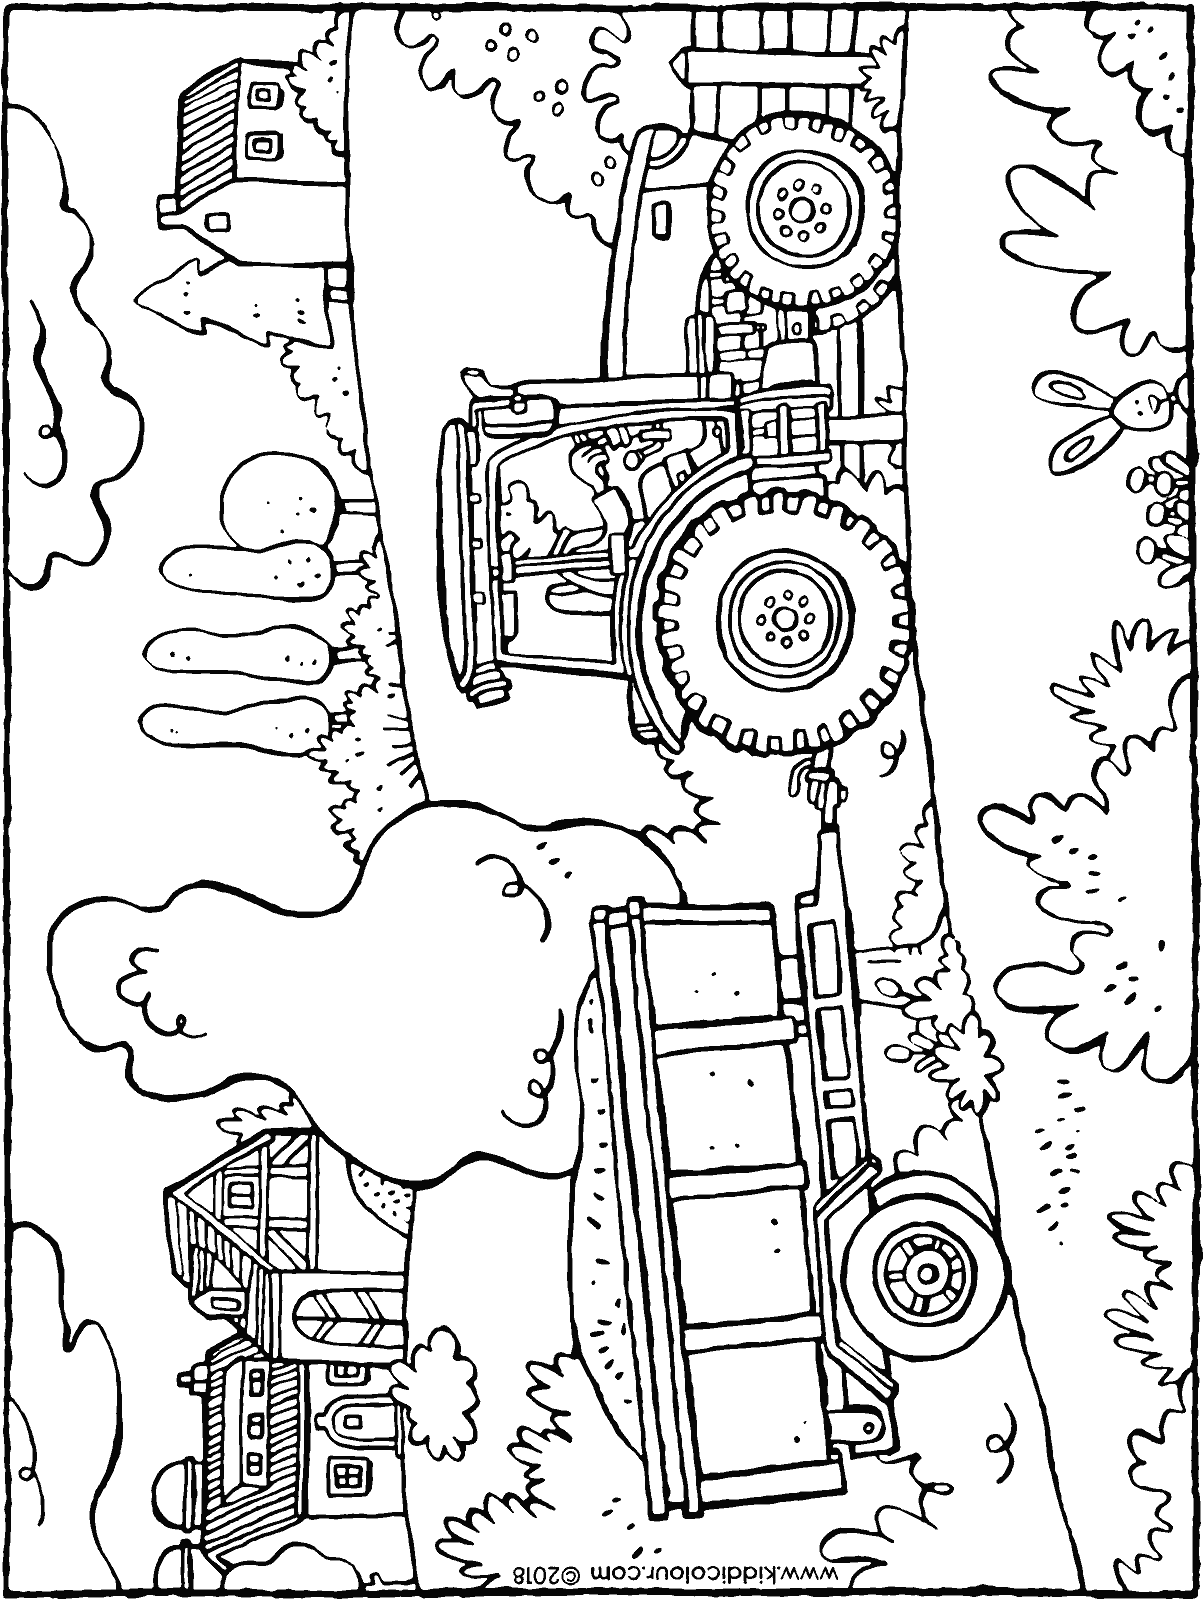 Tractors coloring pages » Free & Printable » Tractor coloring sheets | 1600x1204